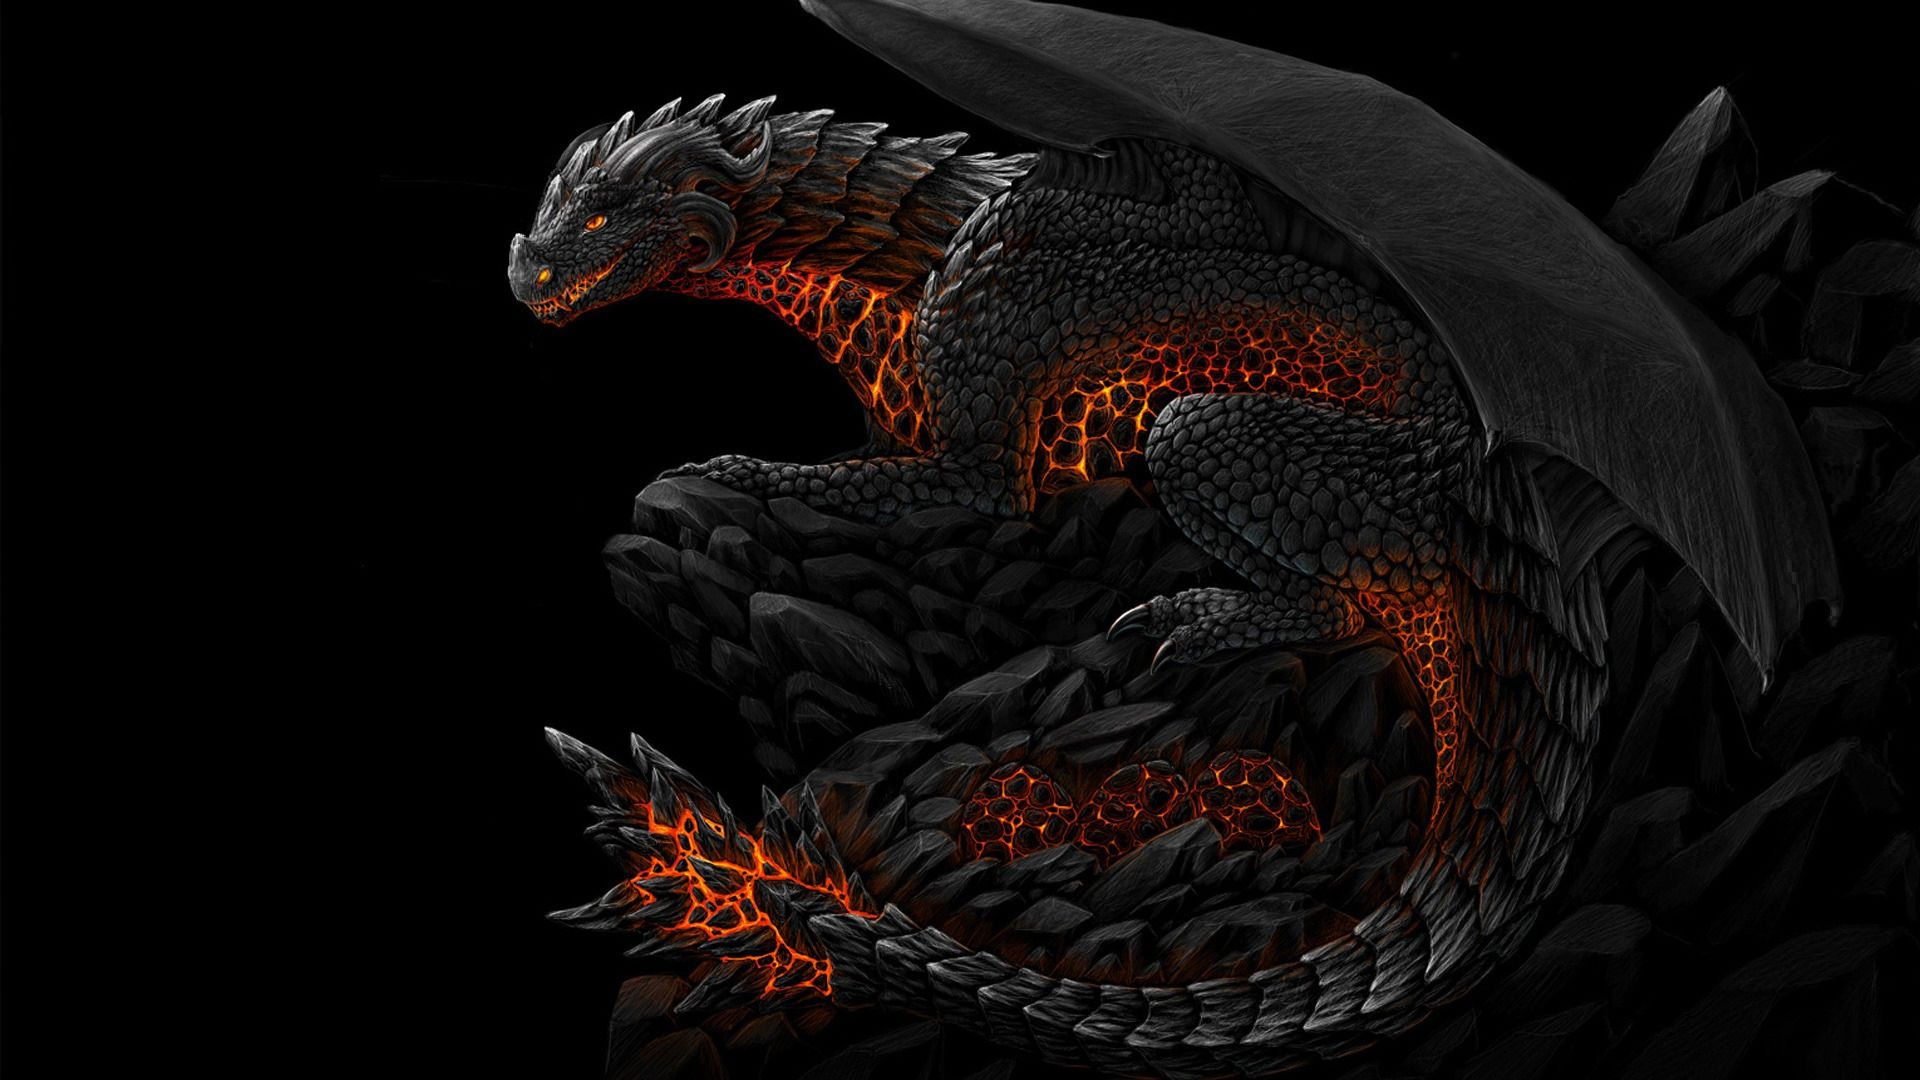 Wallpapers for cool backgrounds of dragons dragons pinterest nature wallpaper chinese - Foto walpepeer ...